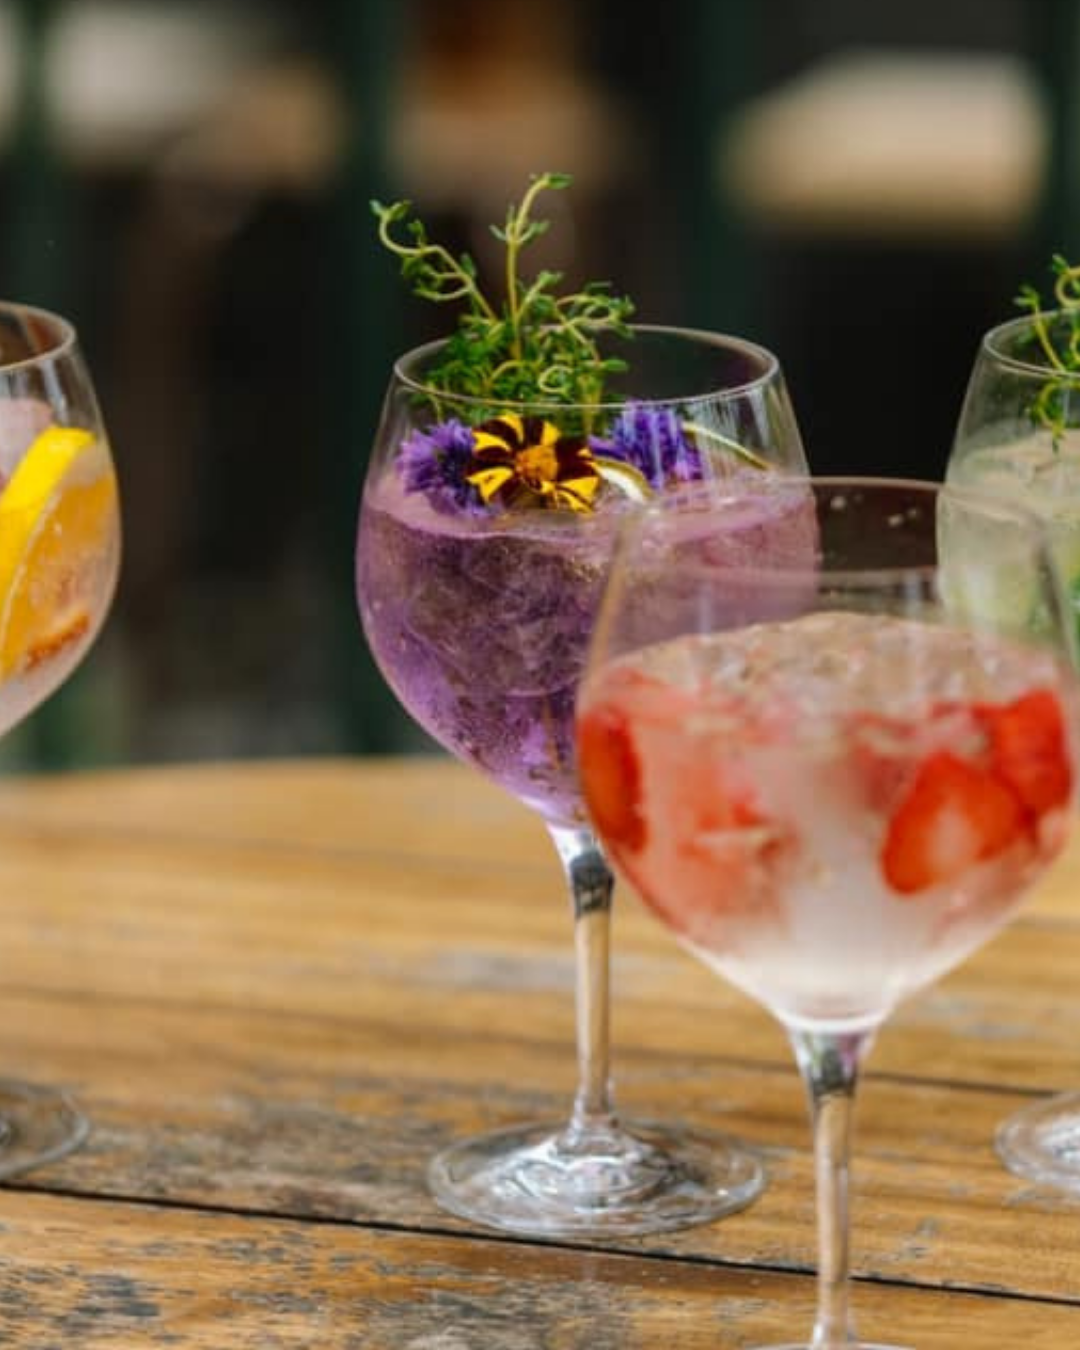 Several wine glasses holding coloured cocktails and flowers